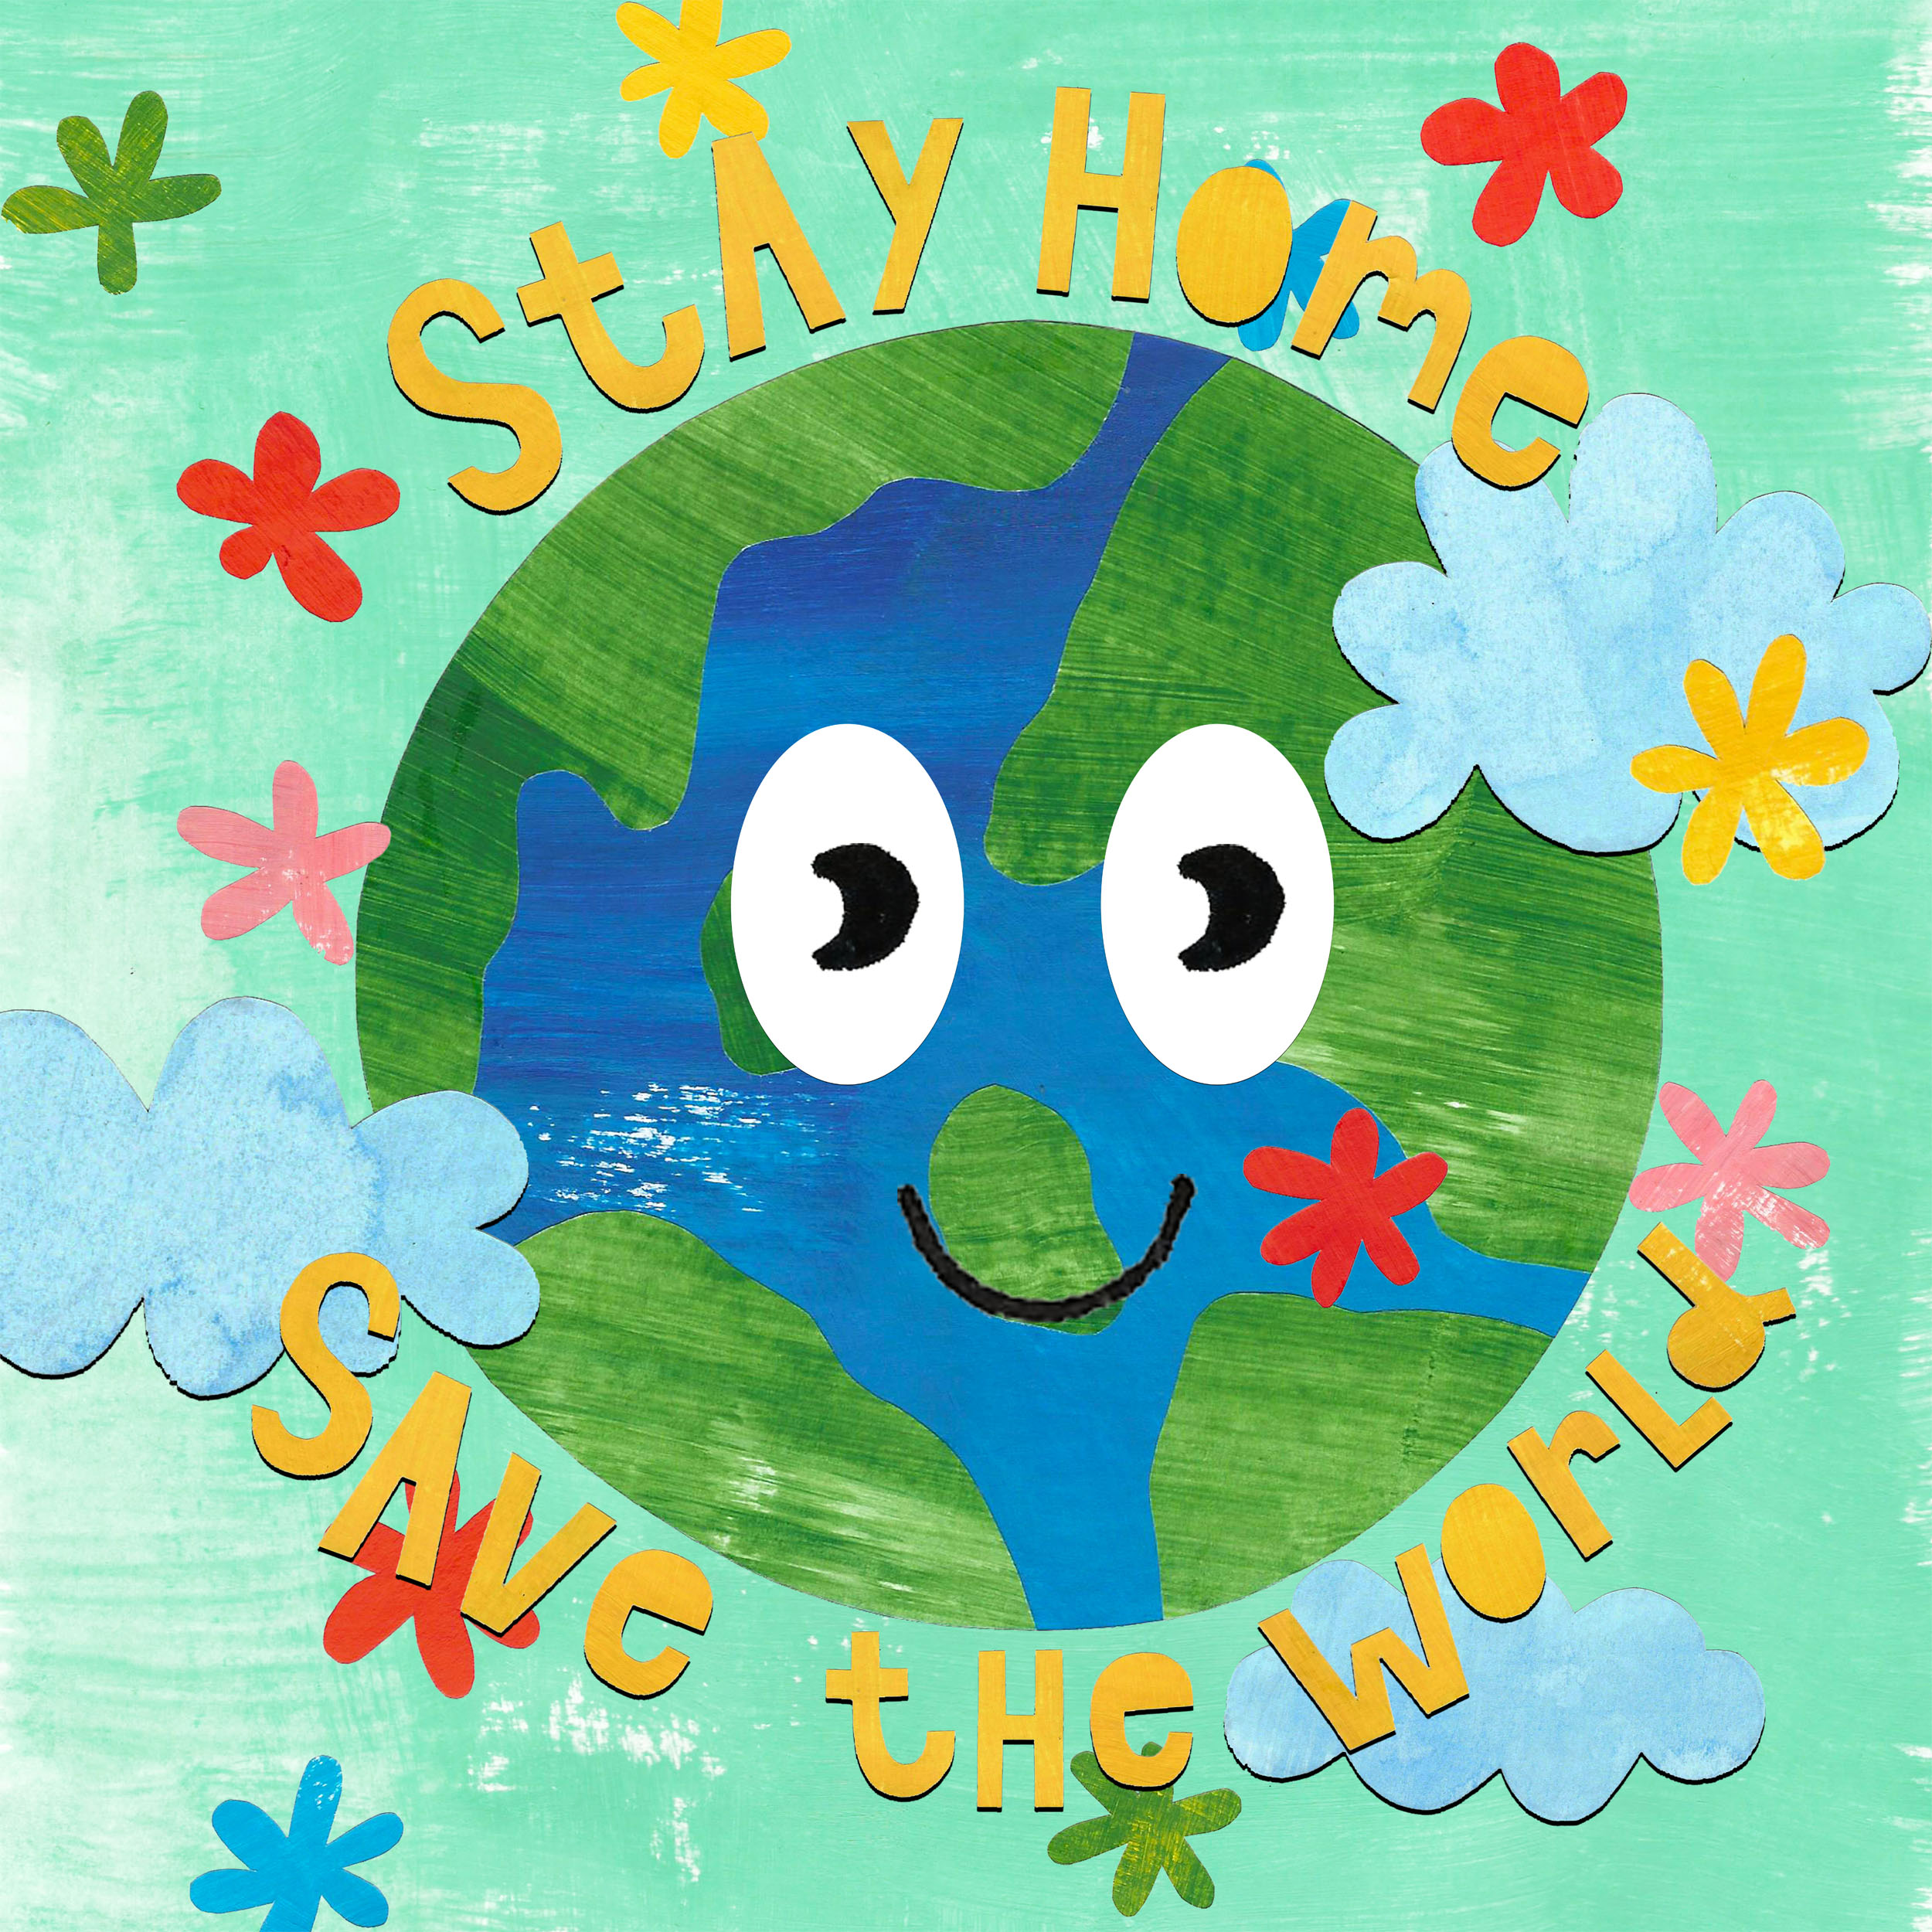 Stay home, save the world cover